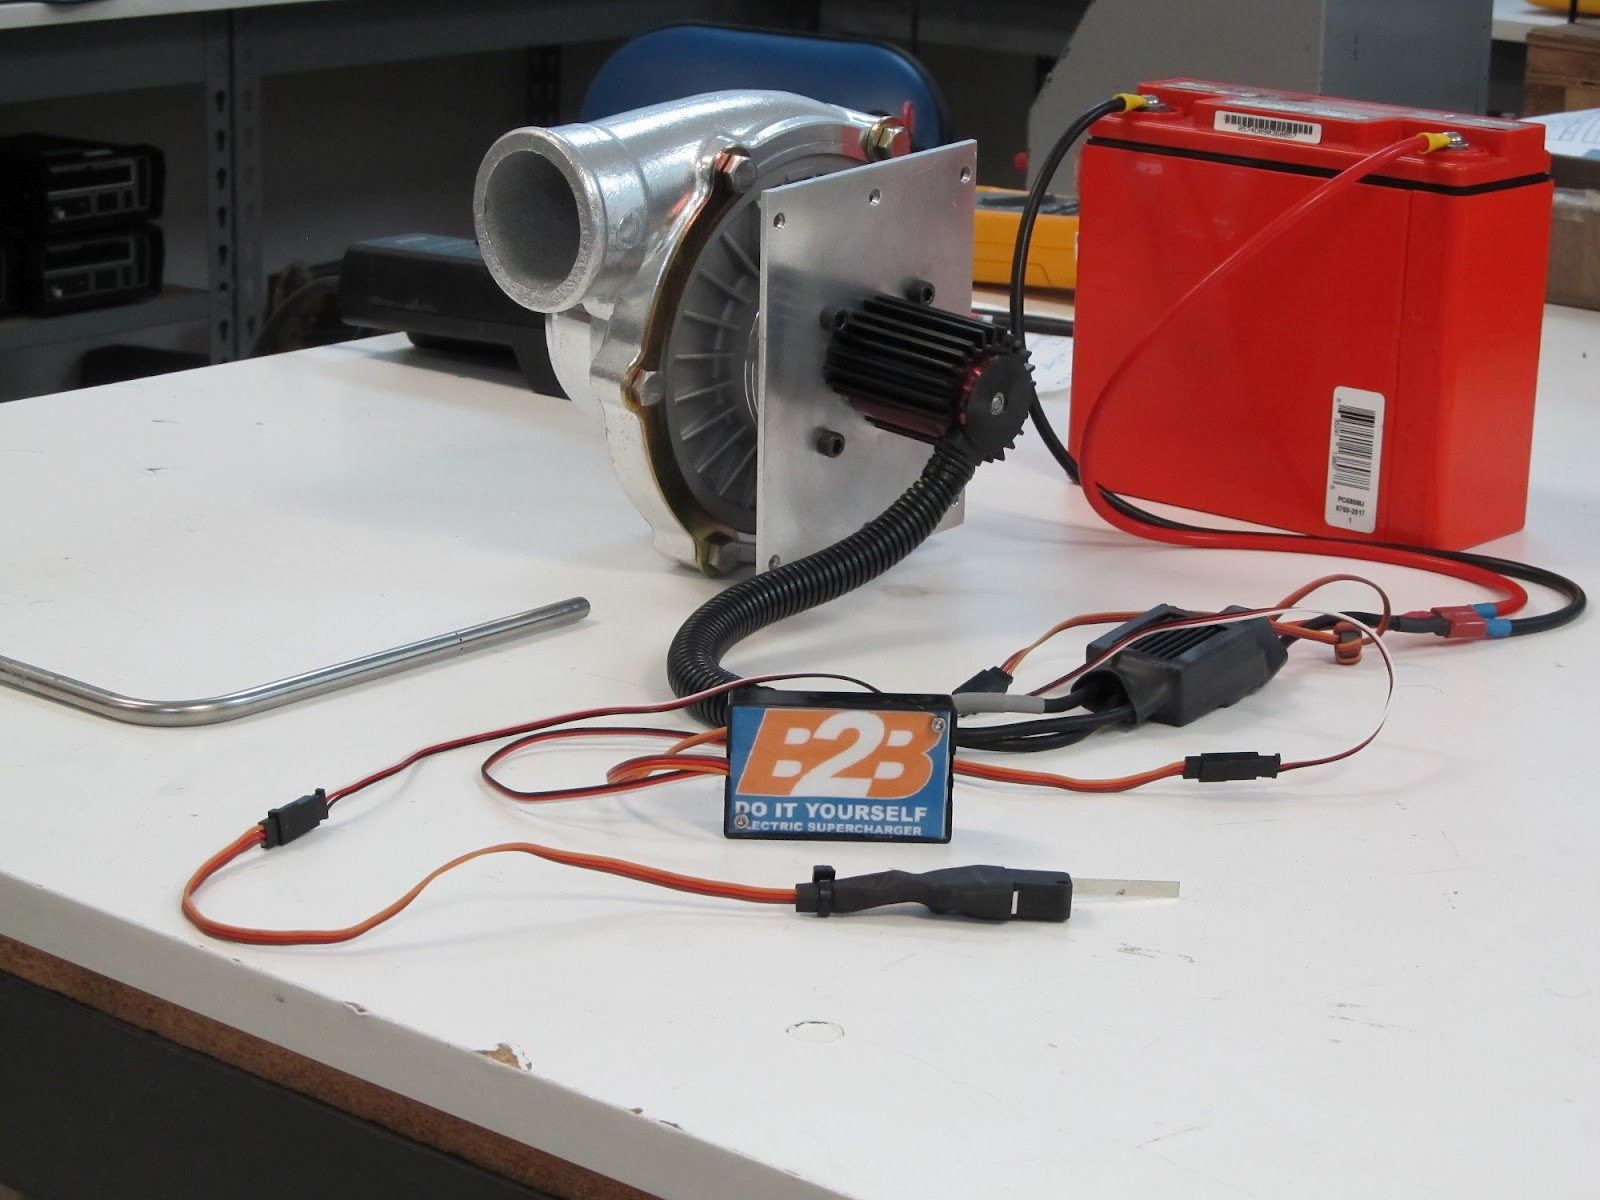 Diy Supercharger Images - Reverse Search